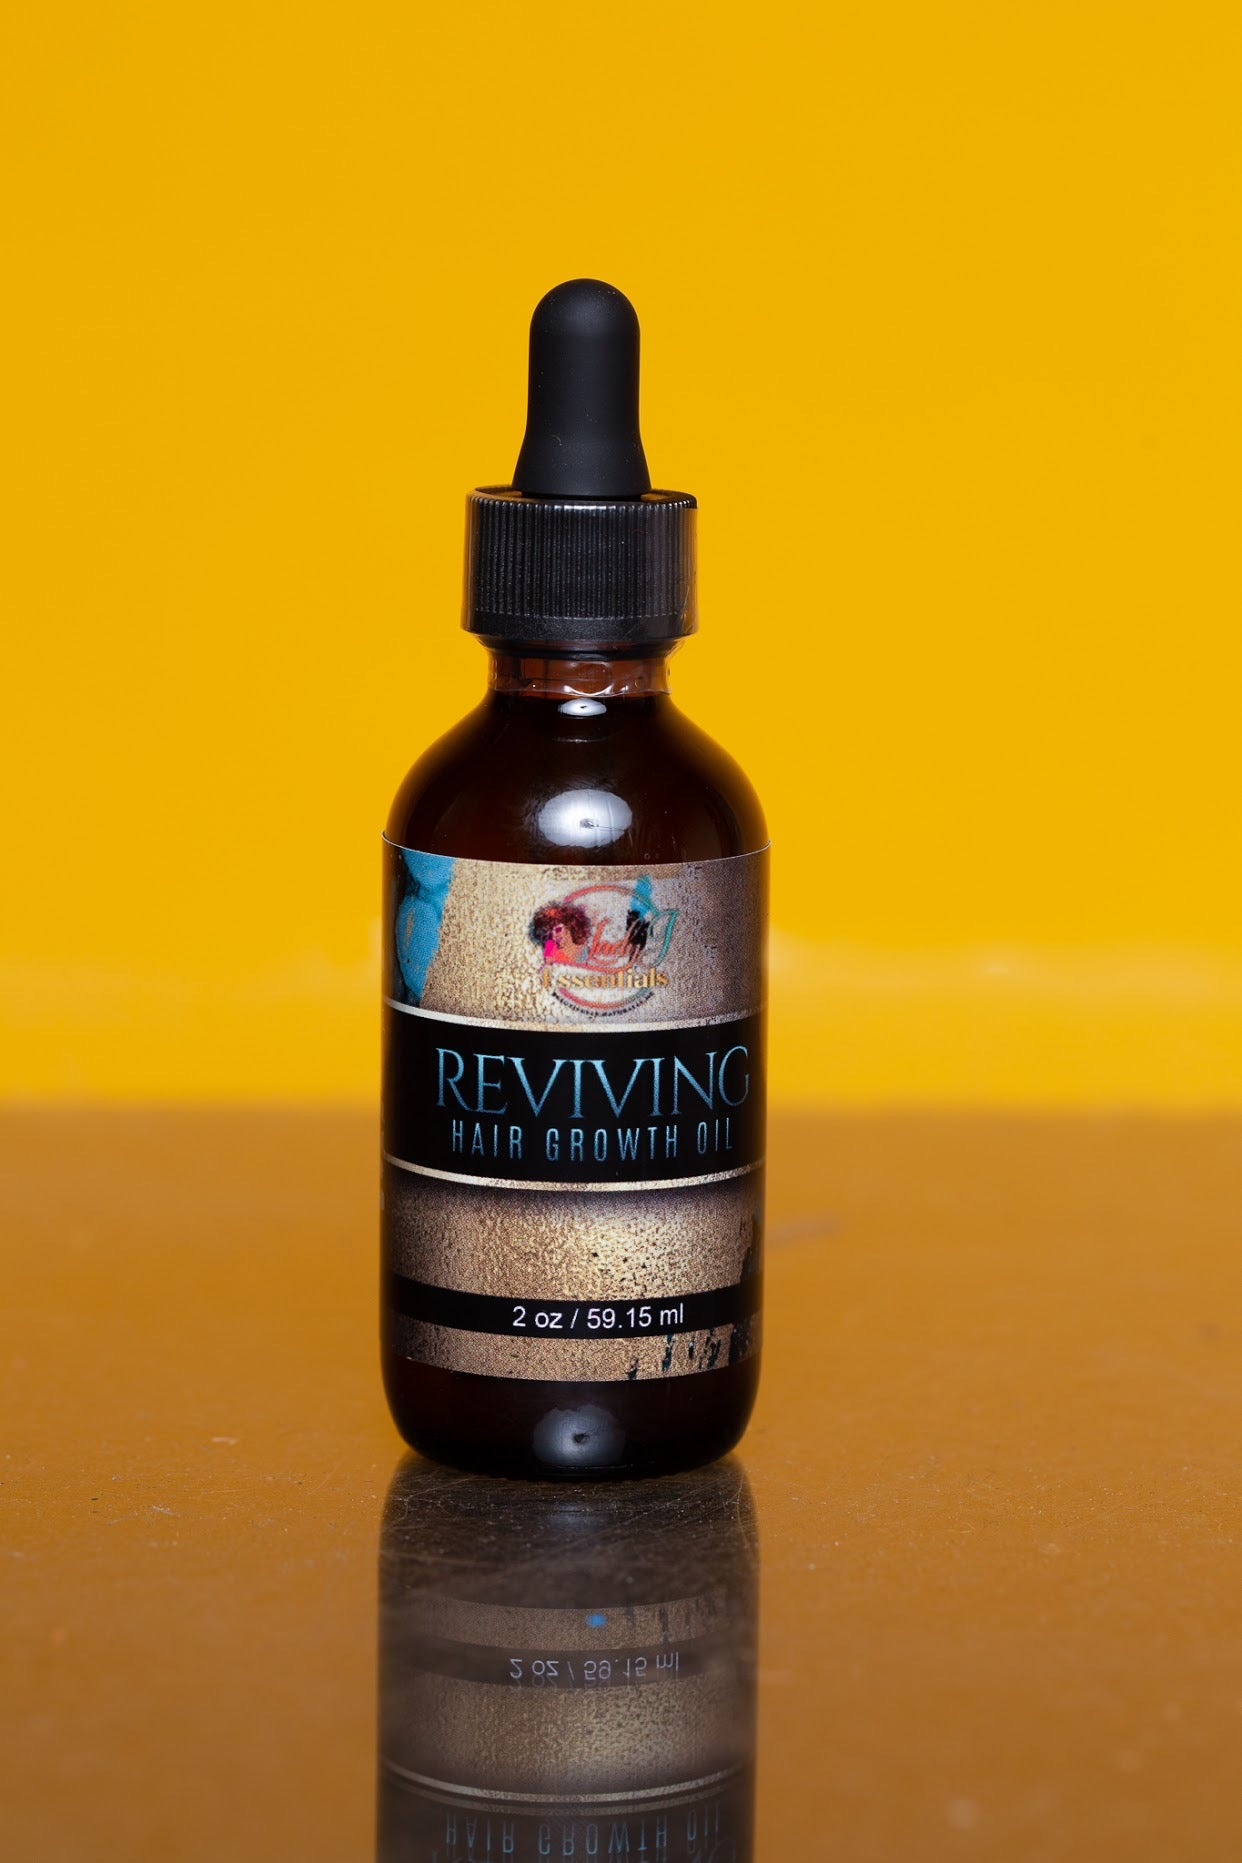 Hair Reviving Growth Oil